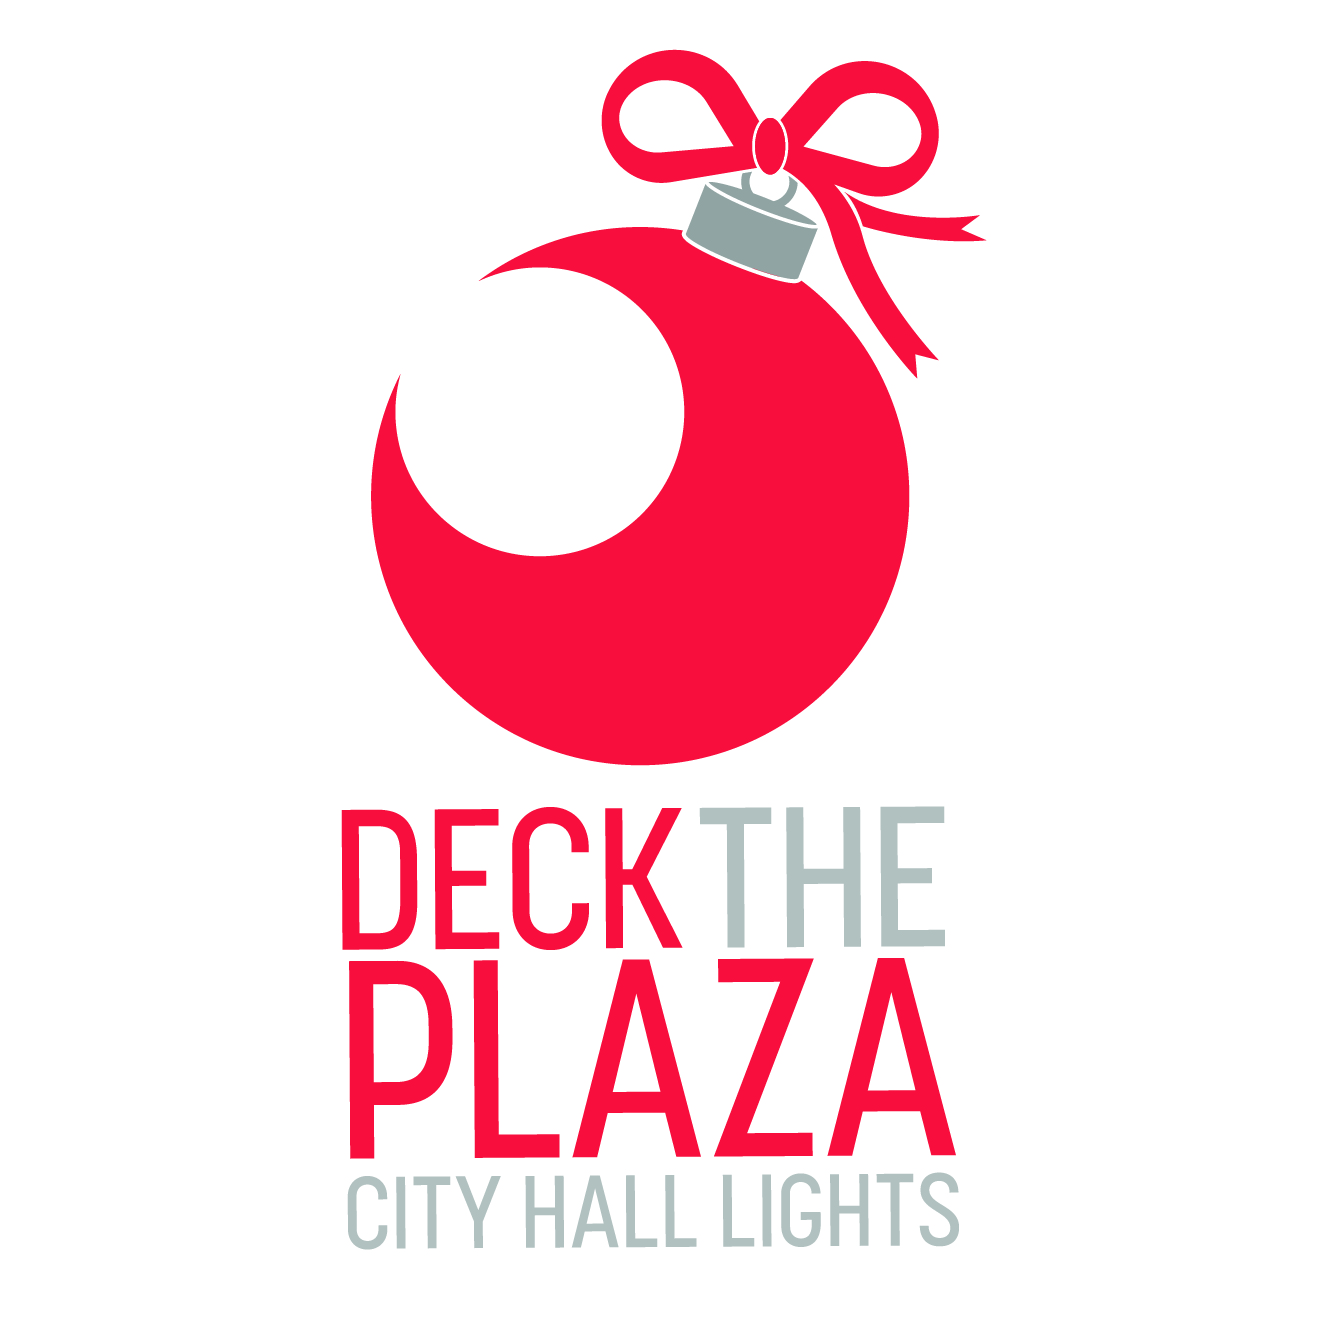 Image of Christmas decoration and marketing deck the plaza at city hall lights.